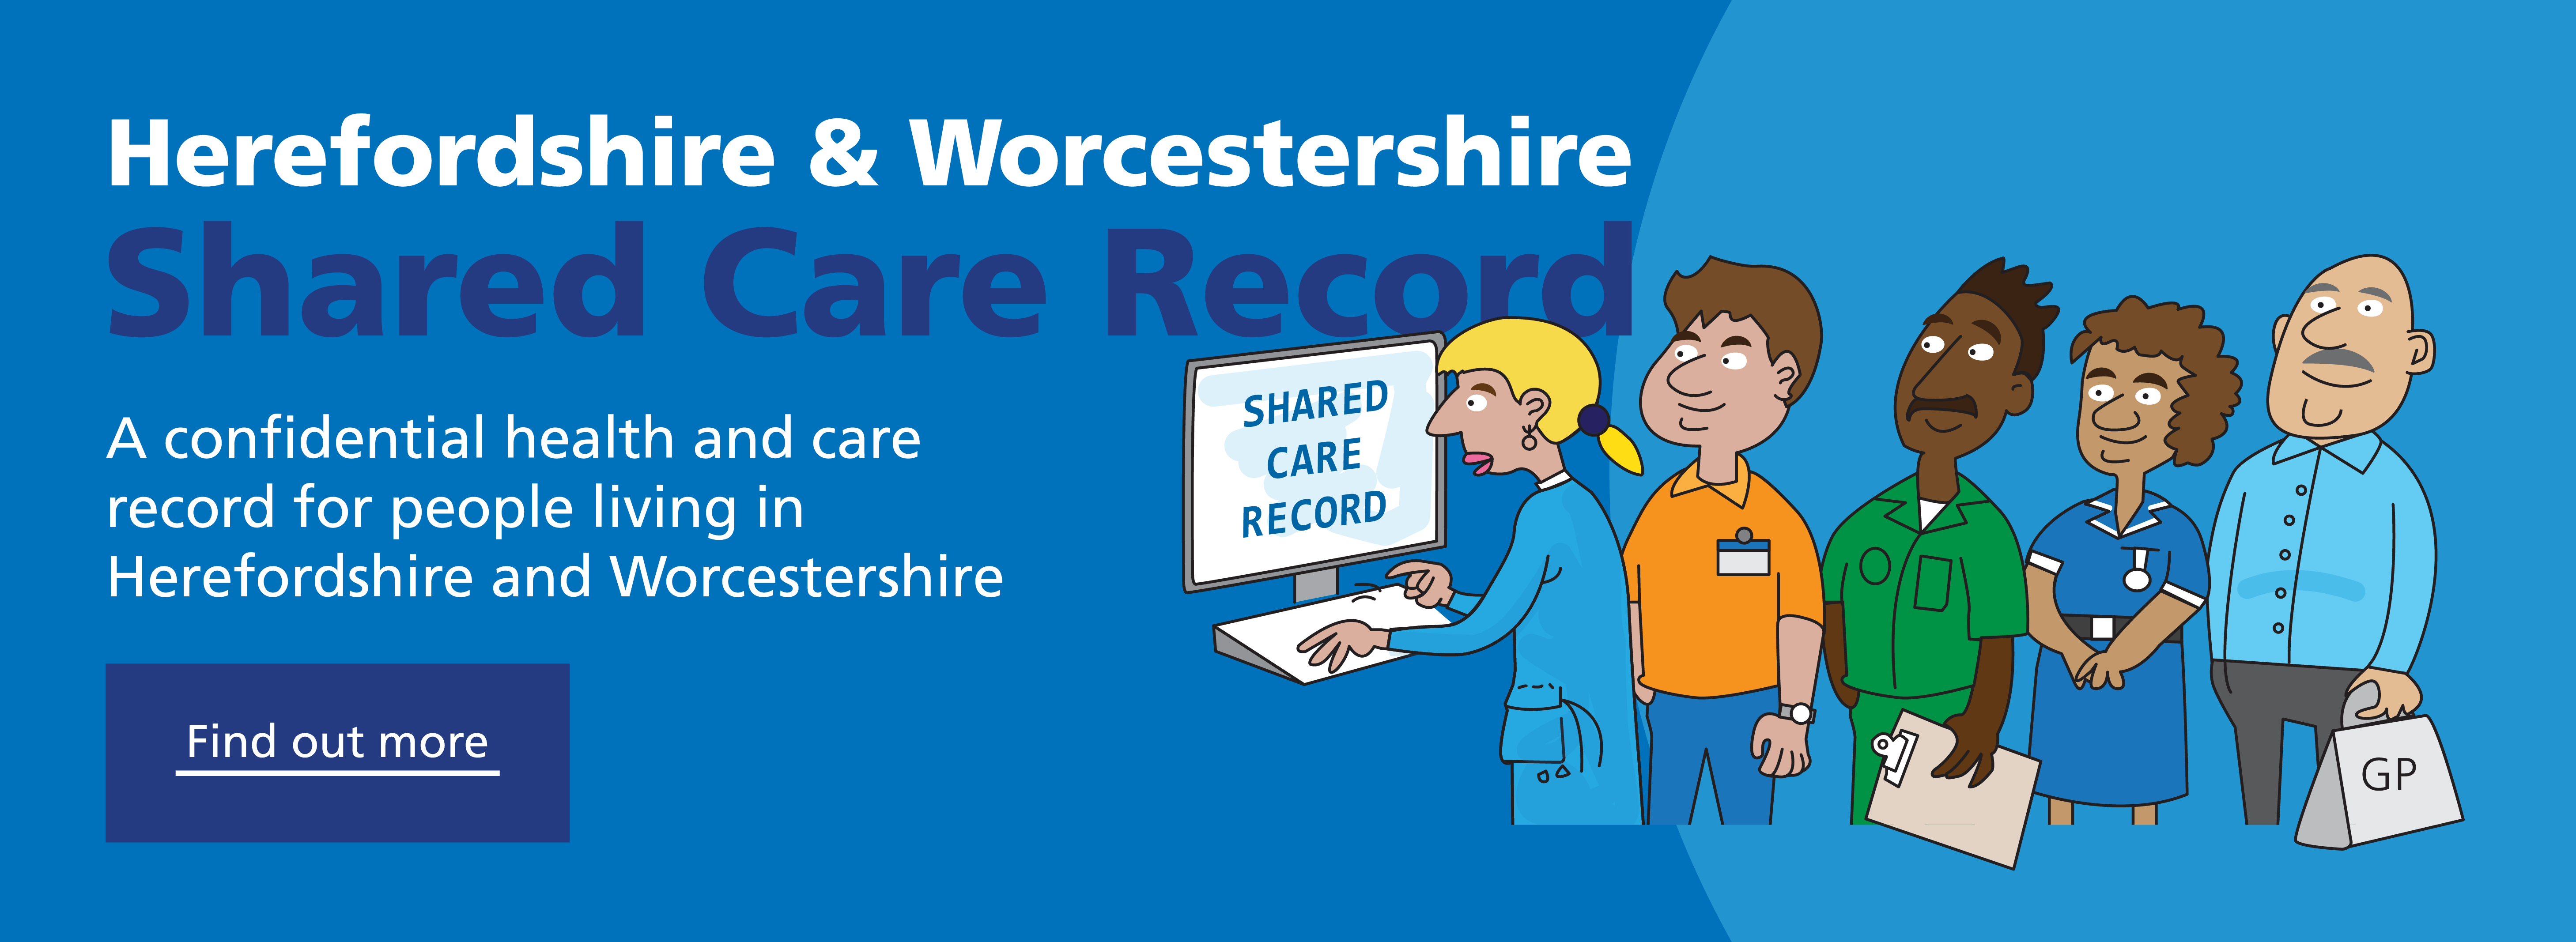 Herefordshire and Worcestershire Shared Care Record information for people living in the area